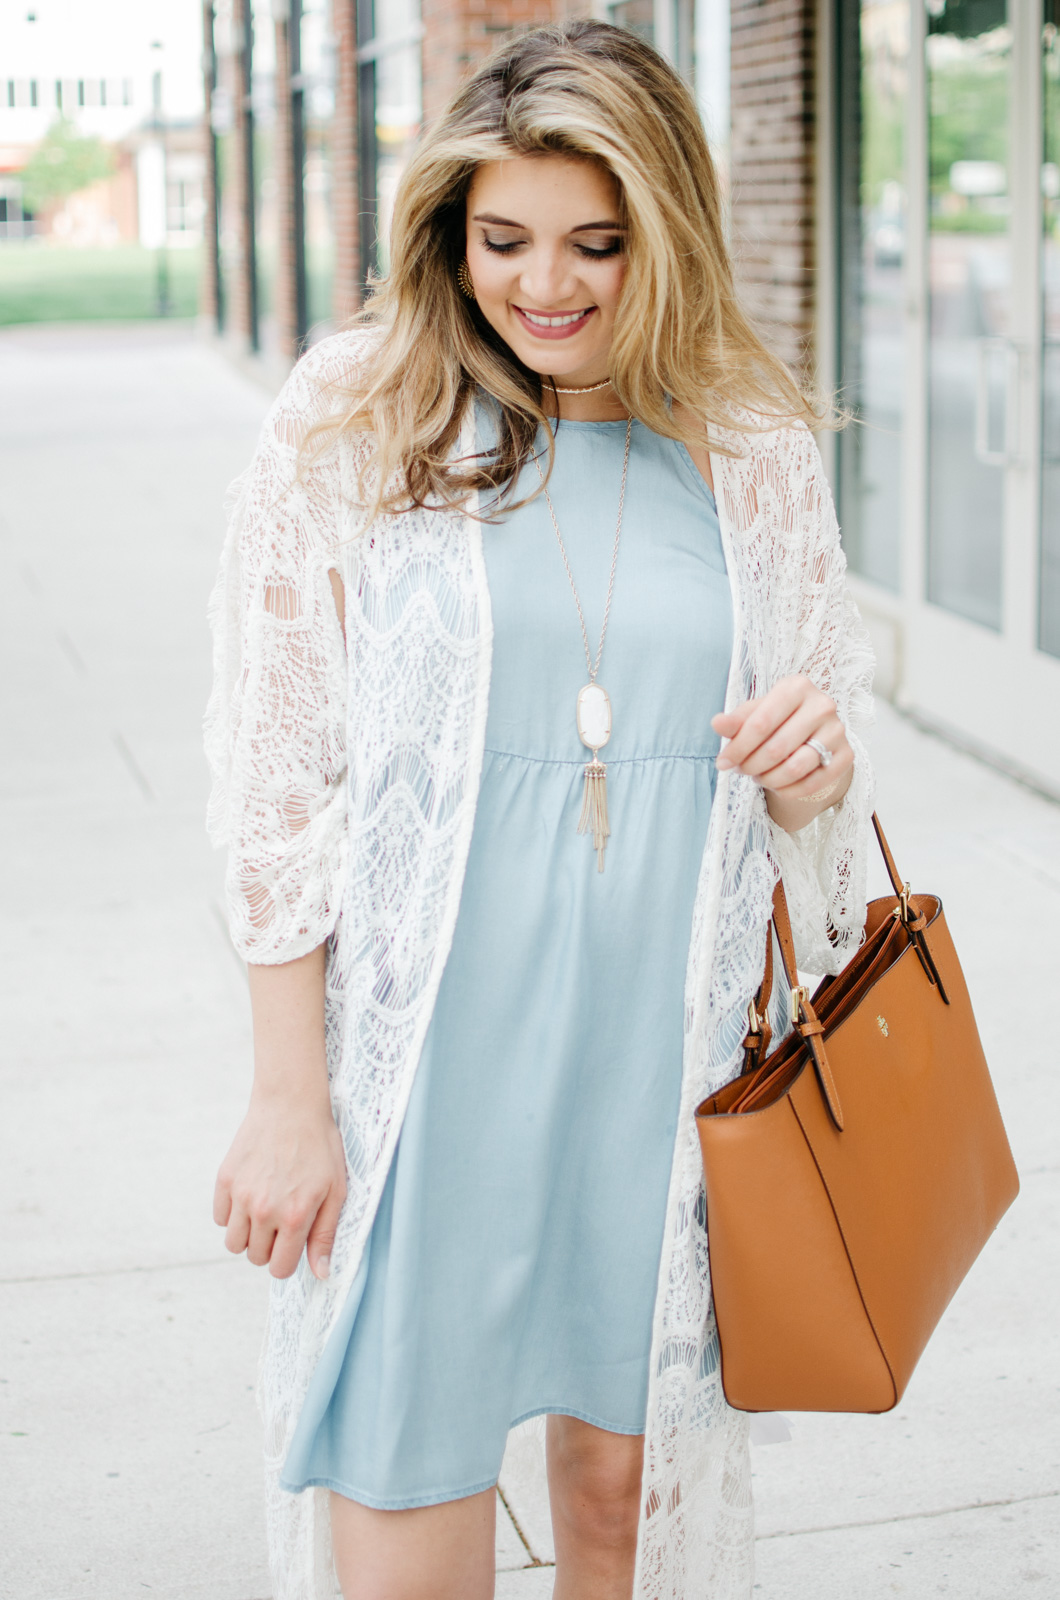 chambray dress with a long lace kimono - boho outfit | For more cute Spring outfits, head to bylaurenm.com